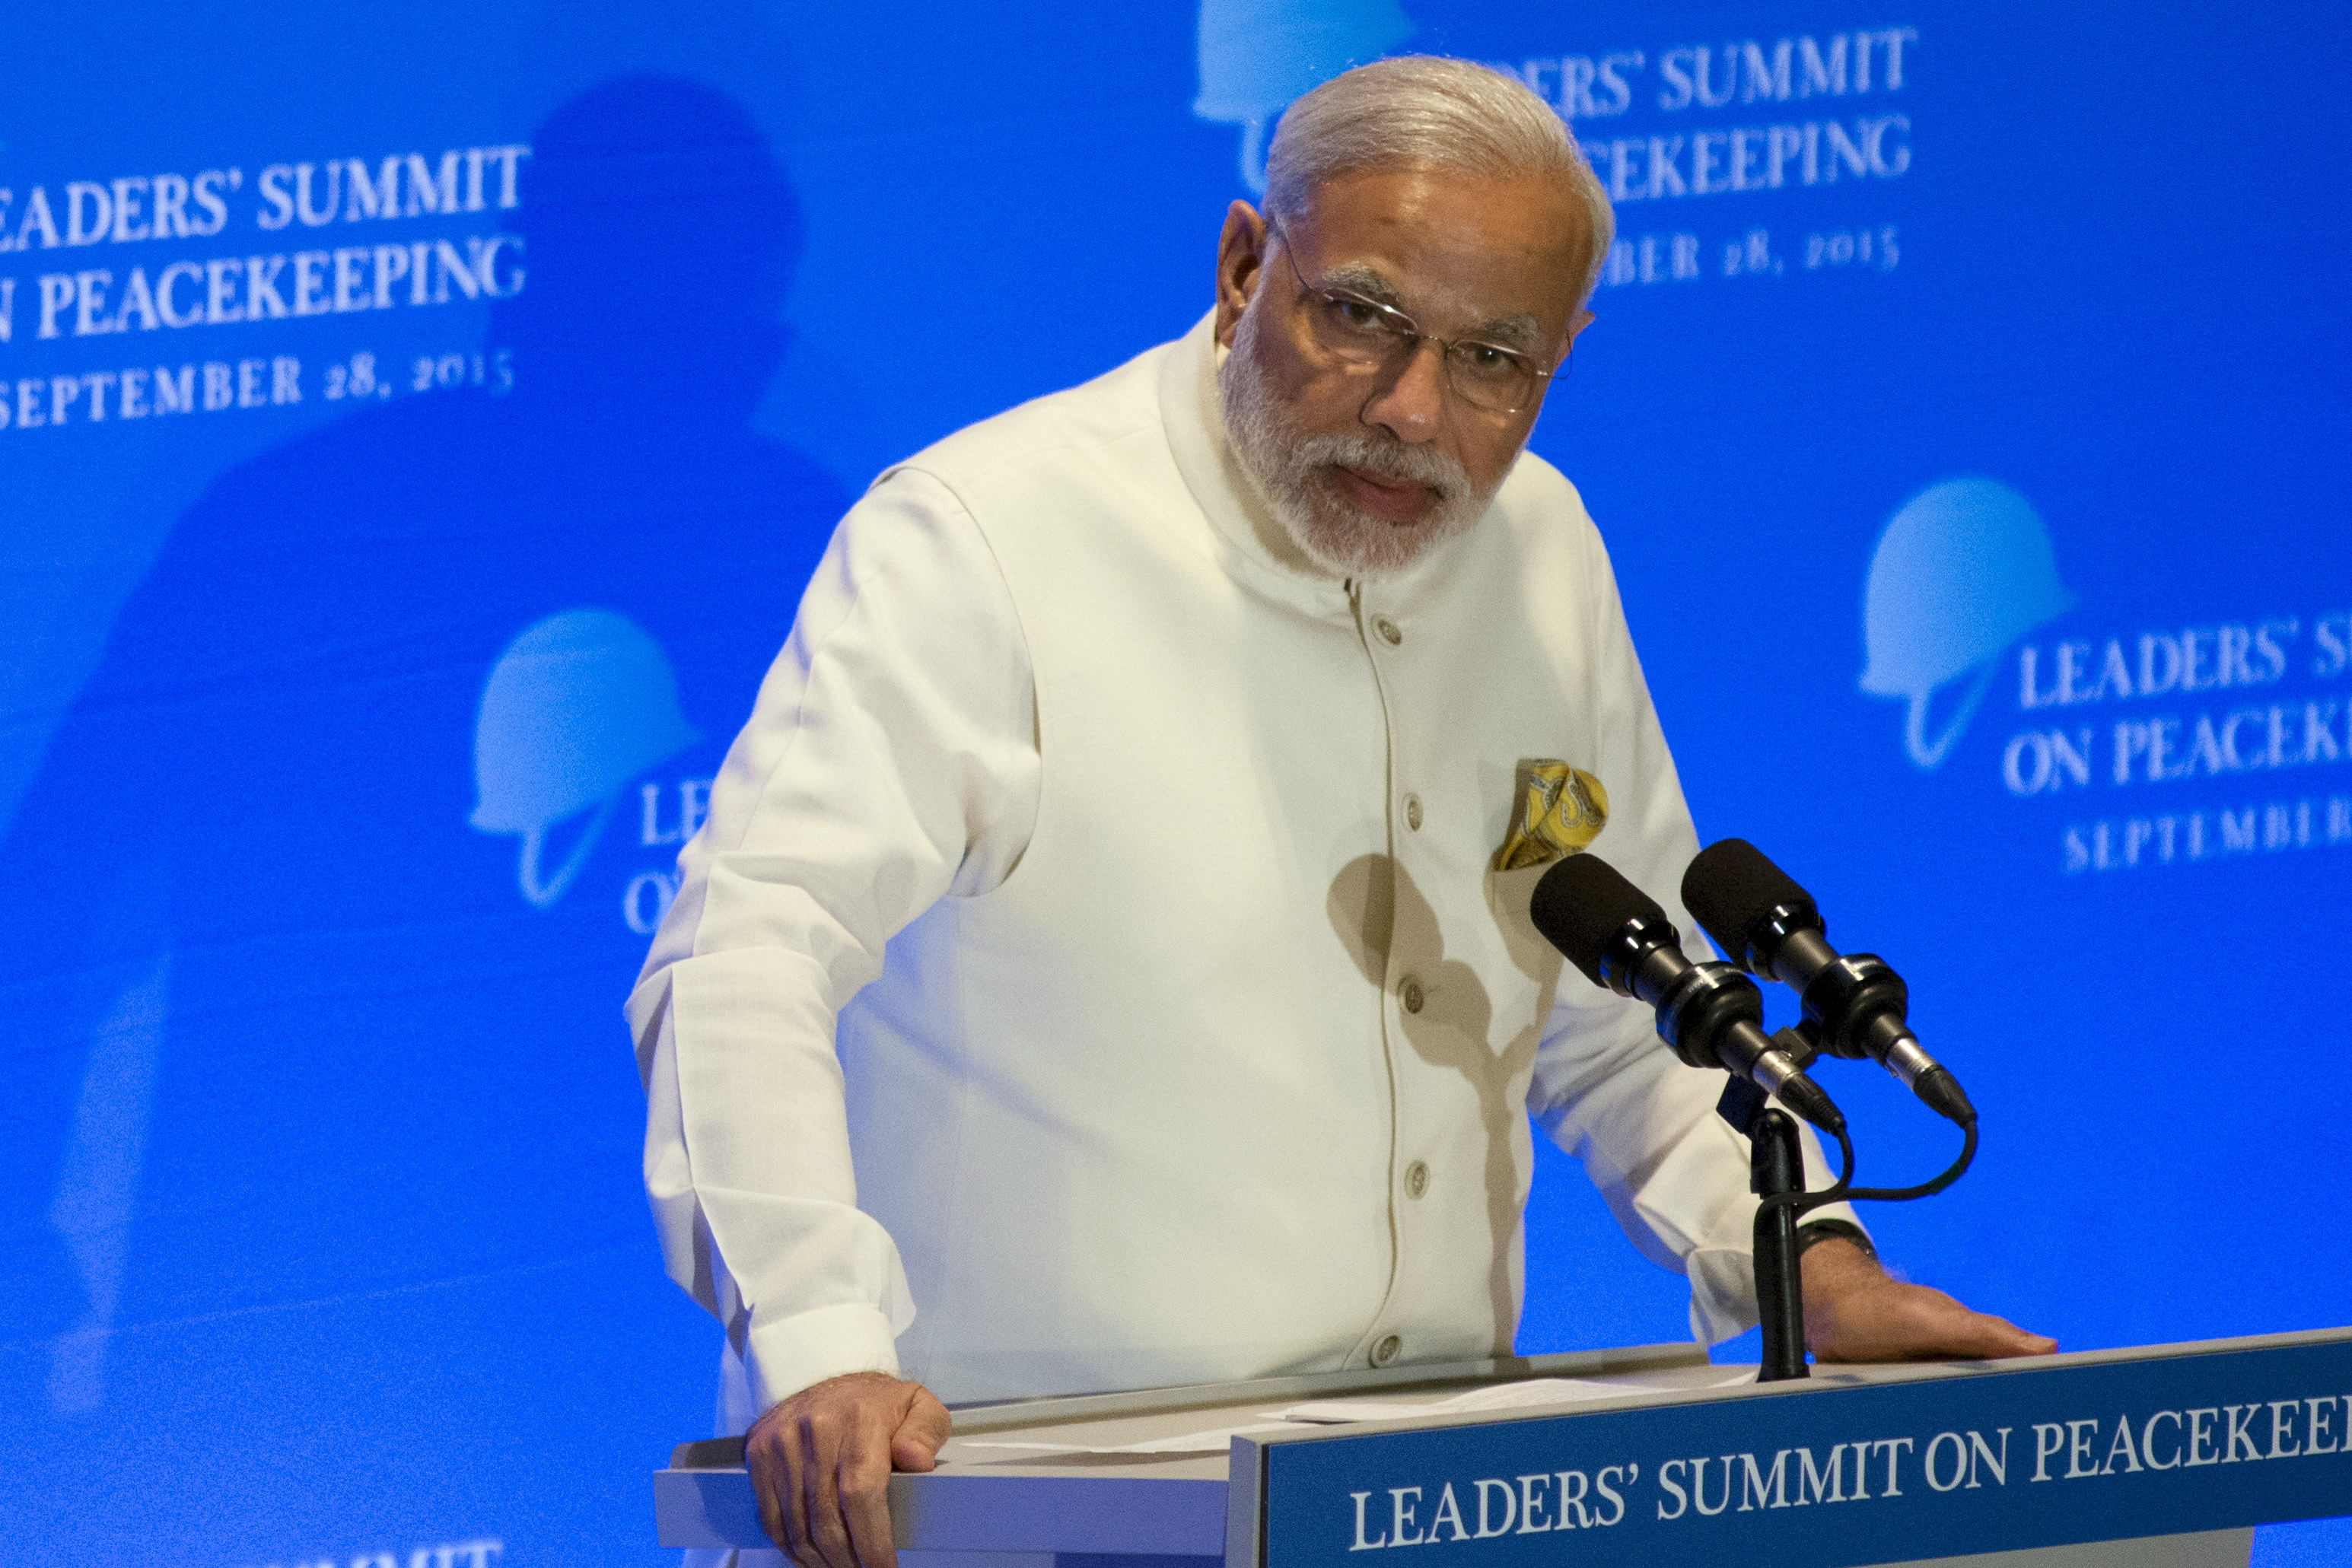 India's Prime Minister Narendra Modi delivers remarks during a Leaders' Summit on Peacekeeping to coincide with the U.N. General Assembly at the U.N. in New York City on Sept. 28, 2015